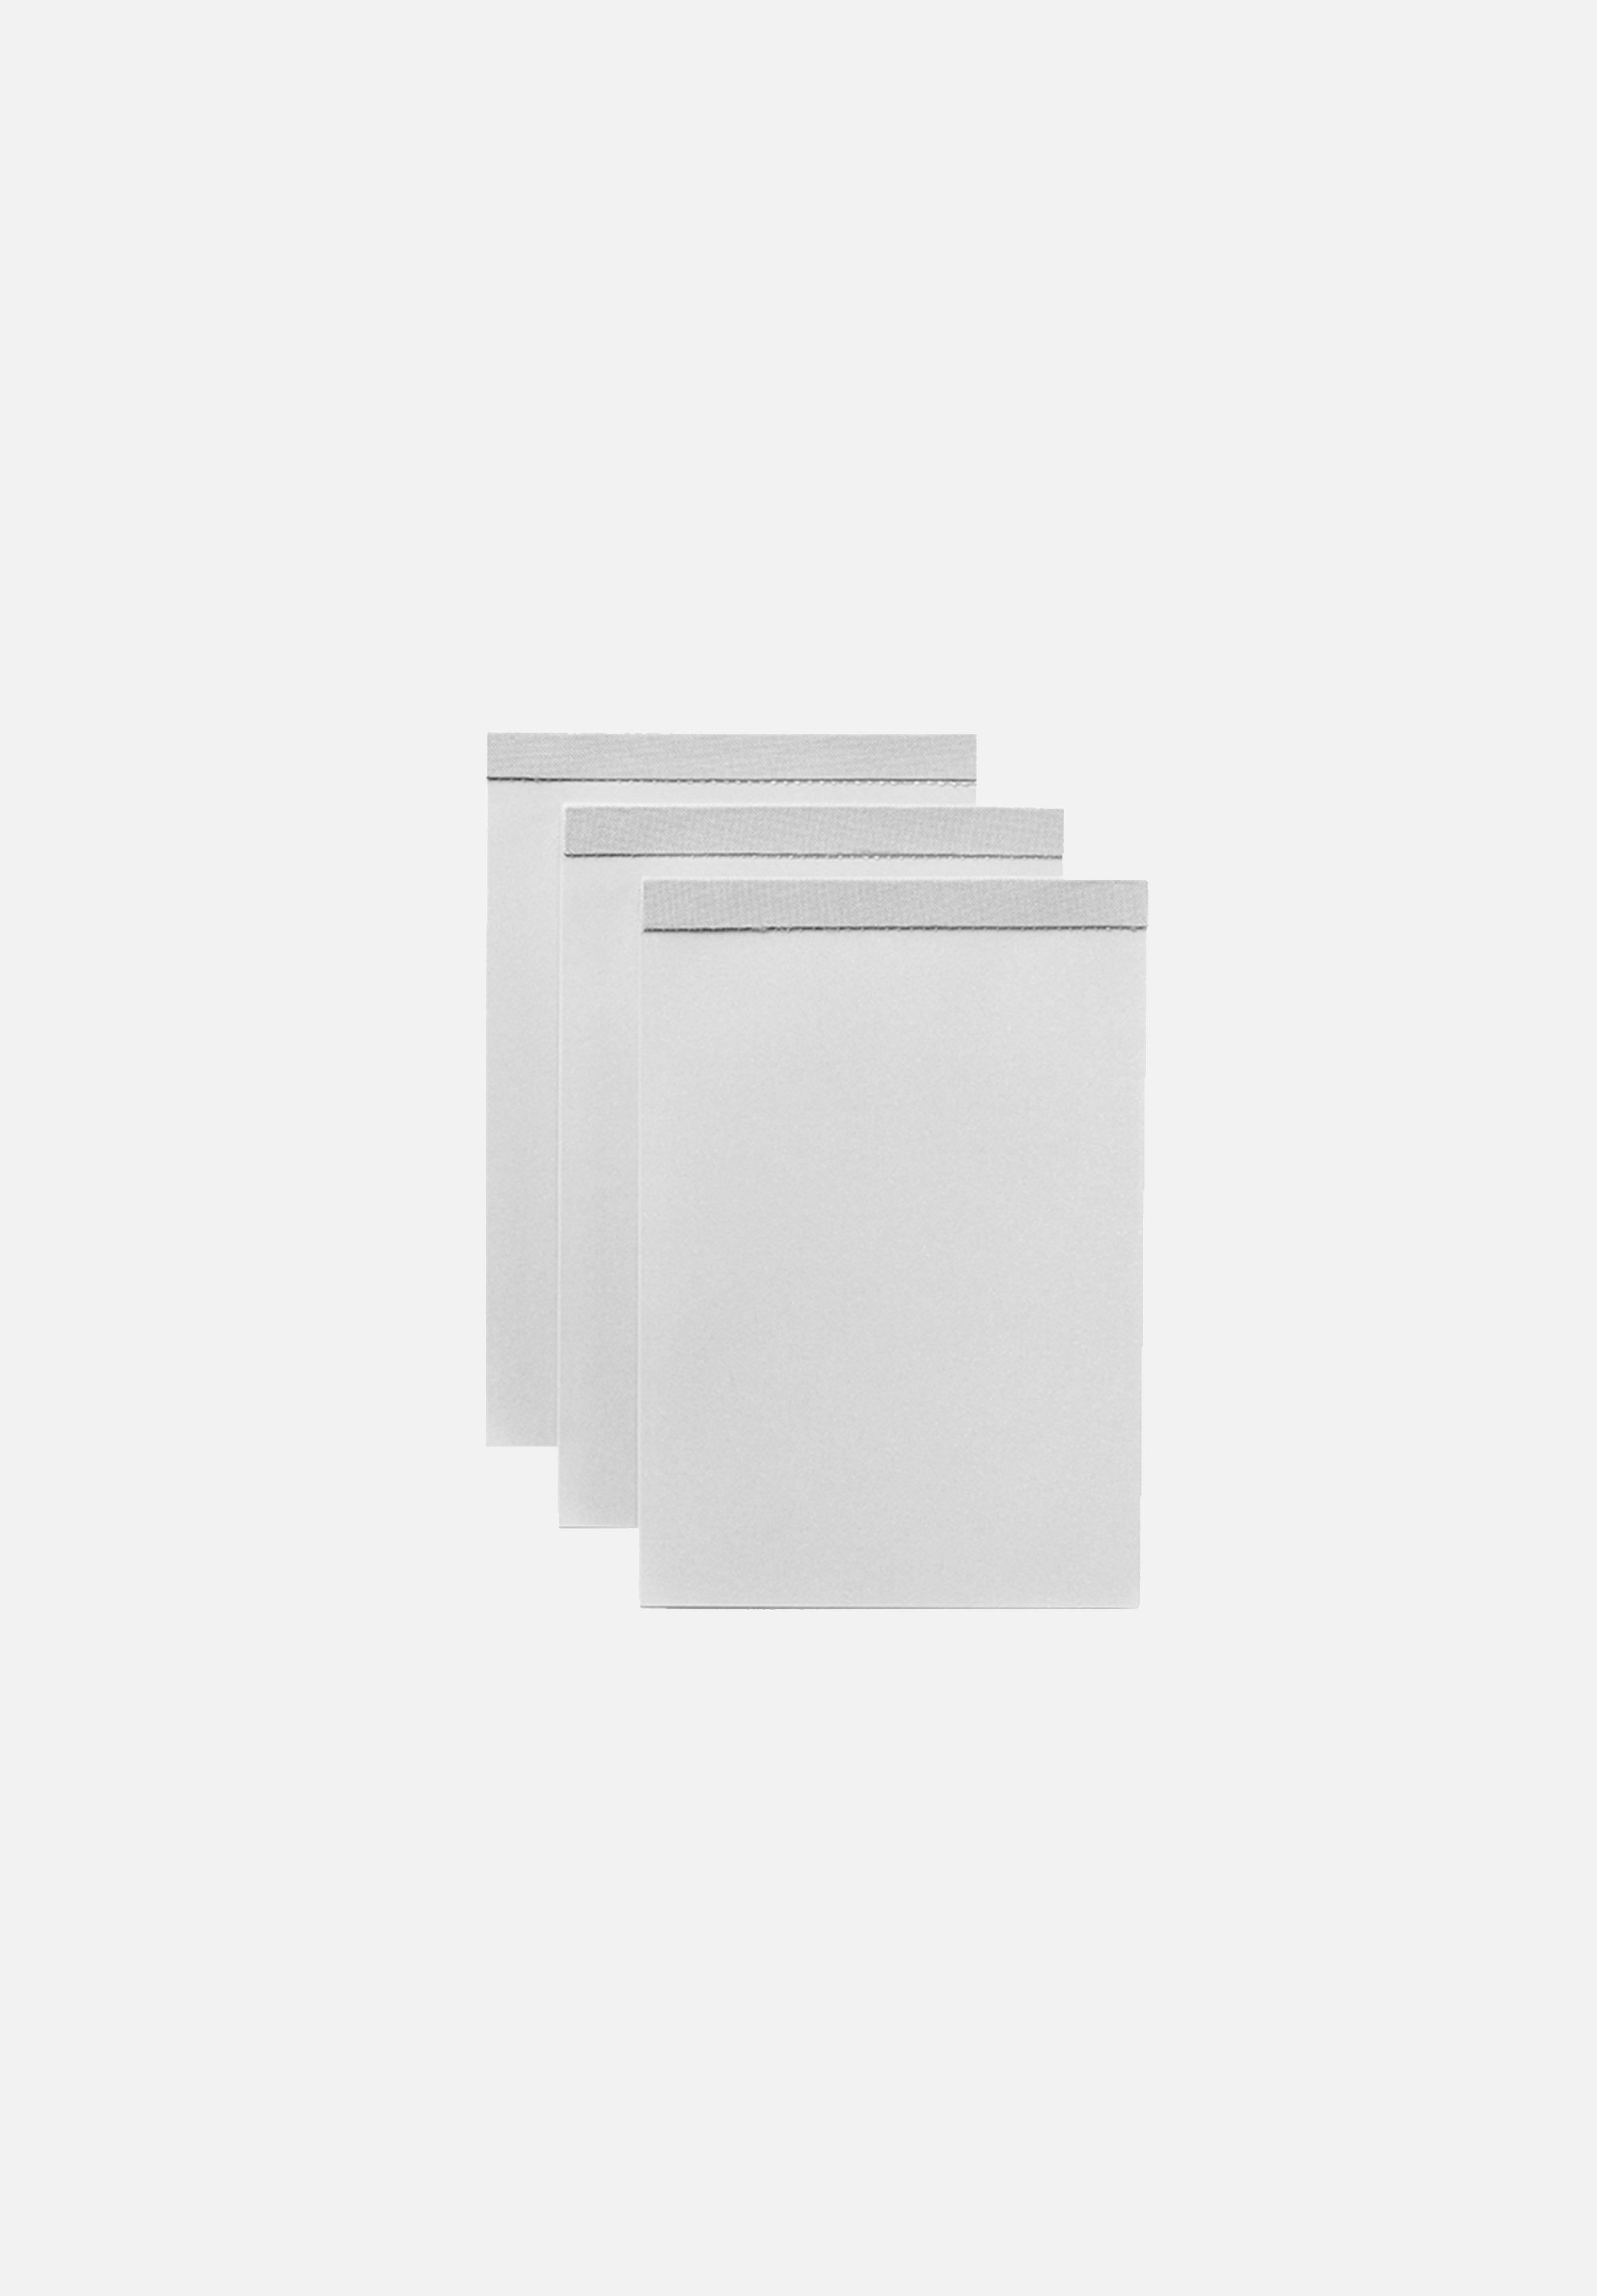 3 Paper Pads-Femmes Regionales-Normann Copenhagen-Average-canada-design-store-danish-denmark-furniture-interior